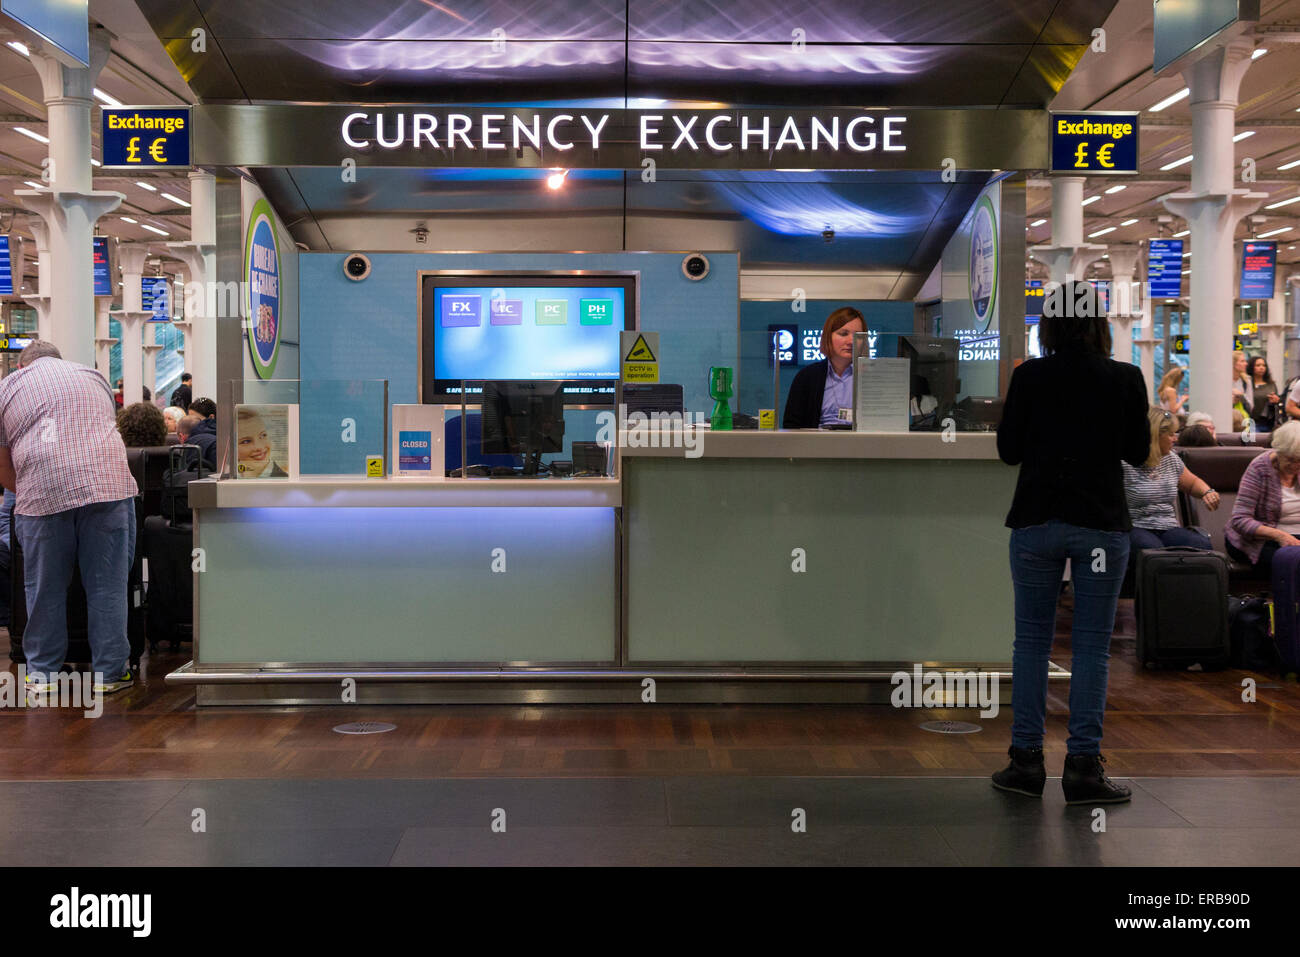 ice bureau de change international currency exchange eurostar stock photo royalty free image. Black Bedroom Furniture Sets. Home Design Ideas